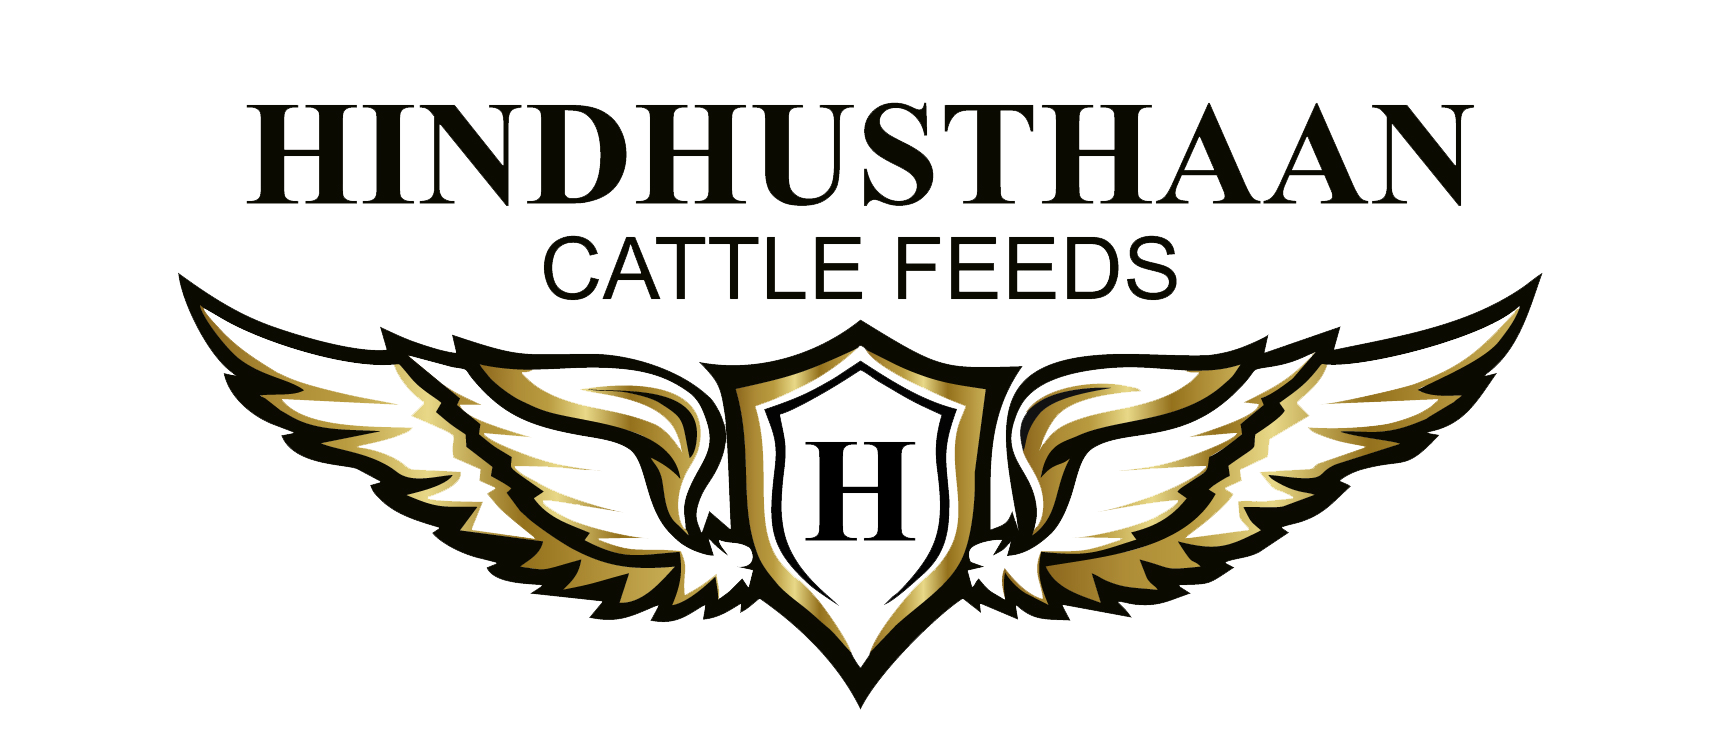 Hindhusthaan Cattle Feeds